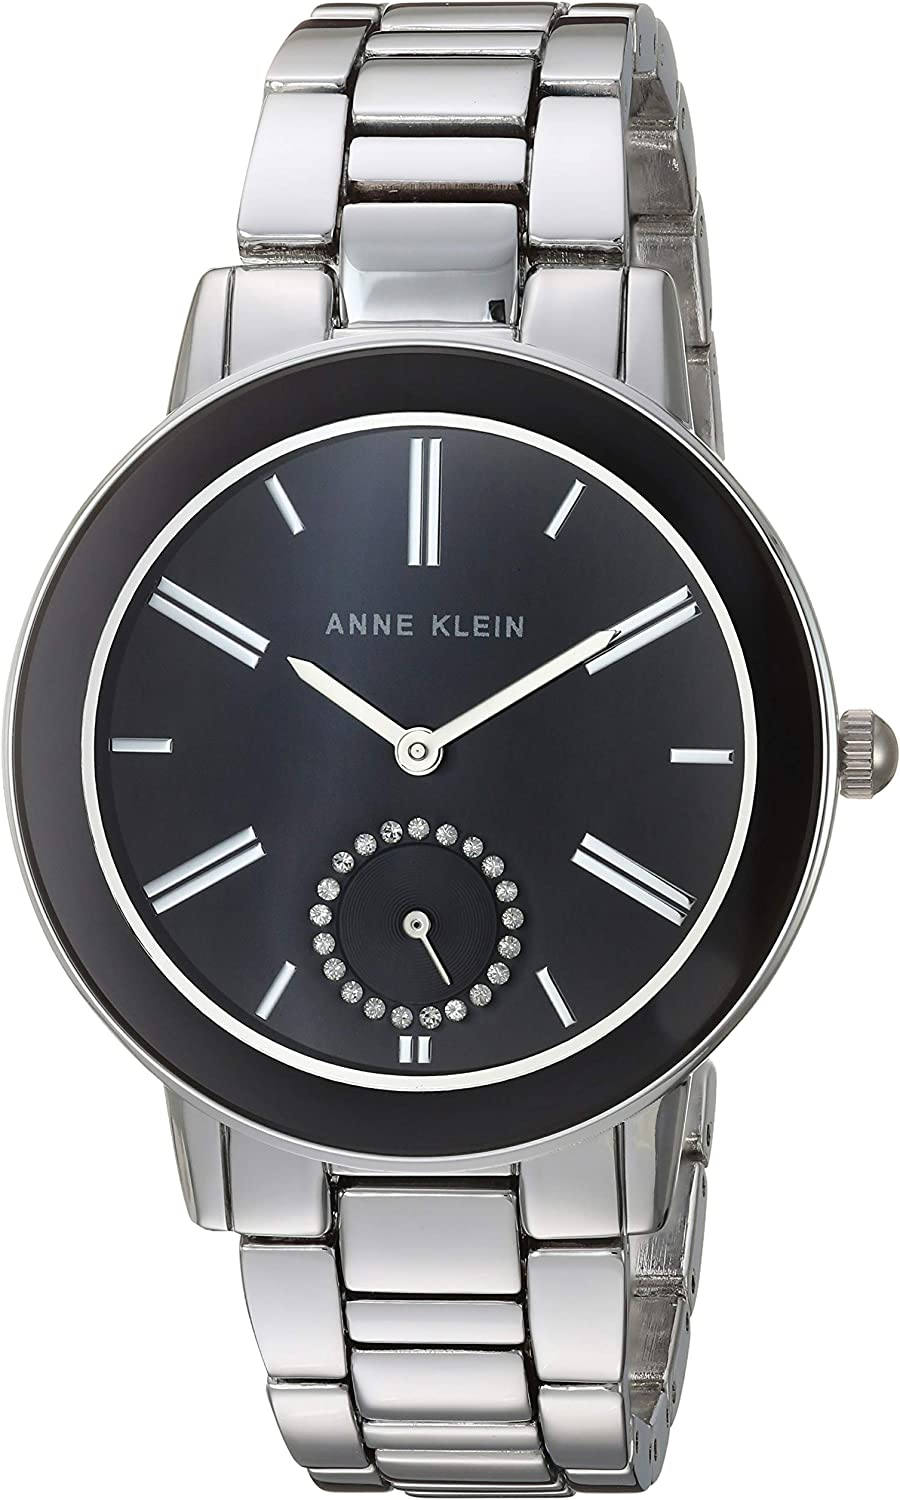 Anne Klein Women's Long-awaited Premium Accented Bracelet Watch Crystal Bombing free shipping